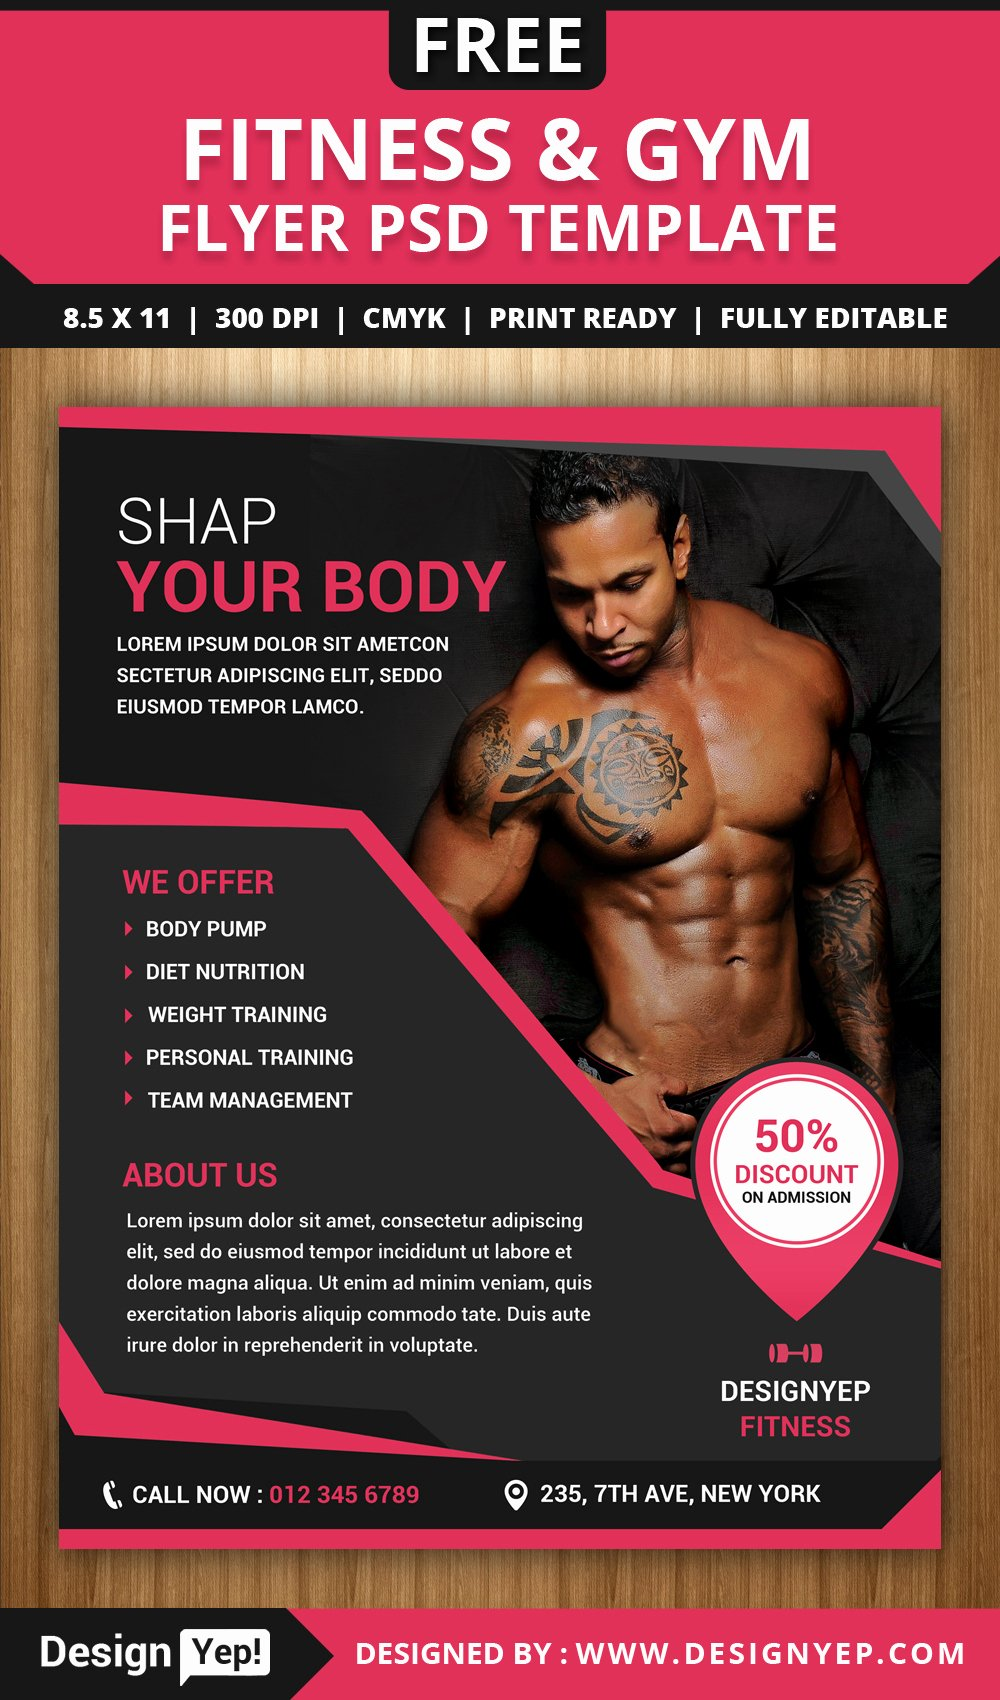 Free Fitness Flyer Template Unique Free Fitness and Gym Flyer Psd Template Designyep